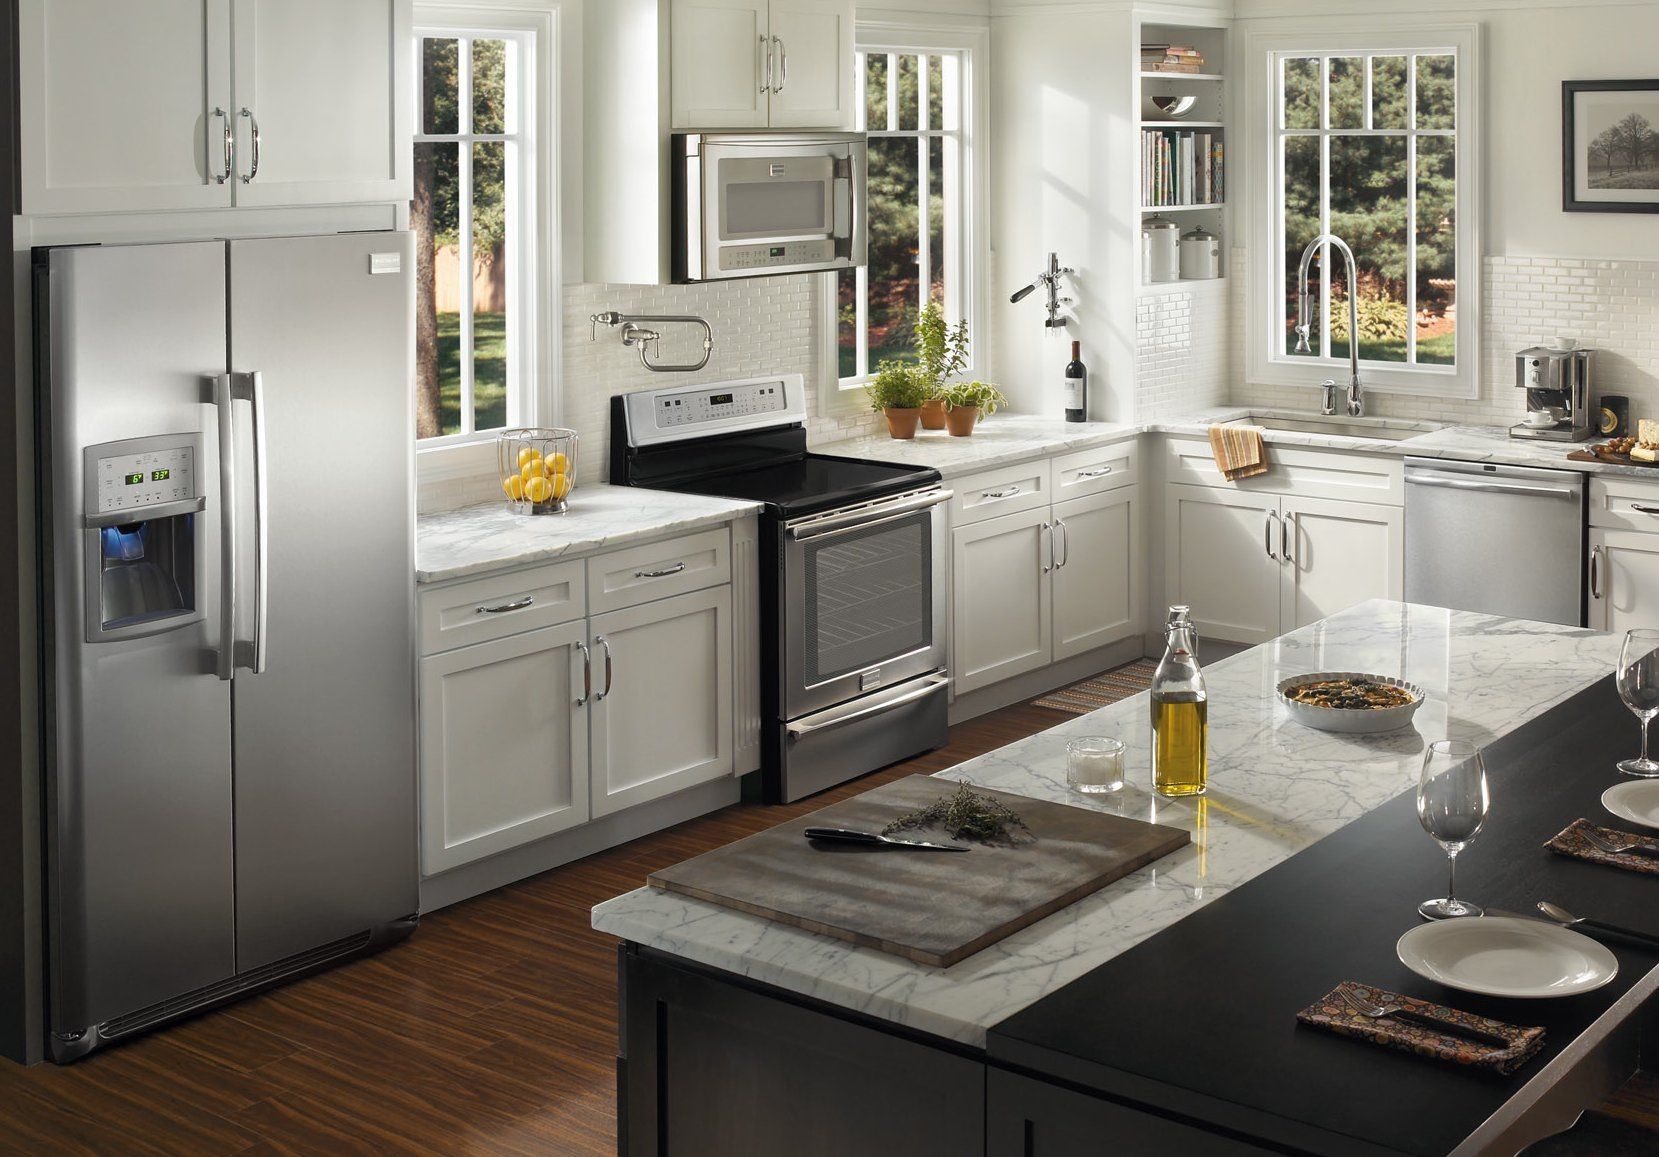 mirab s home store kitchen appliance packages professional kitchen appliances kitchen renovation on kitchen appliances id=48211